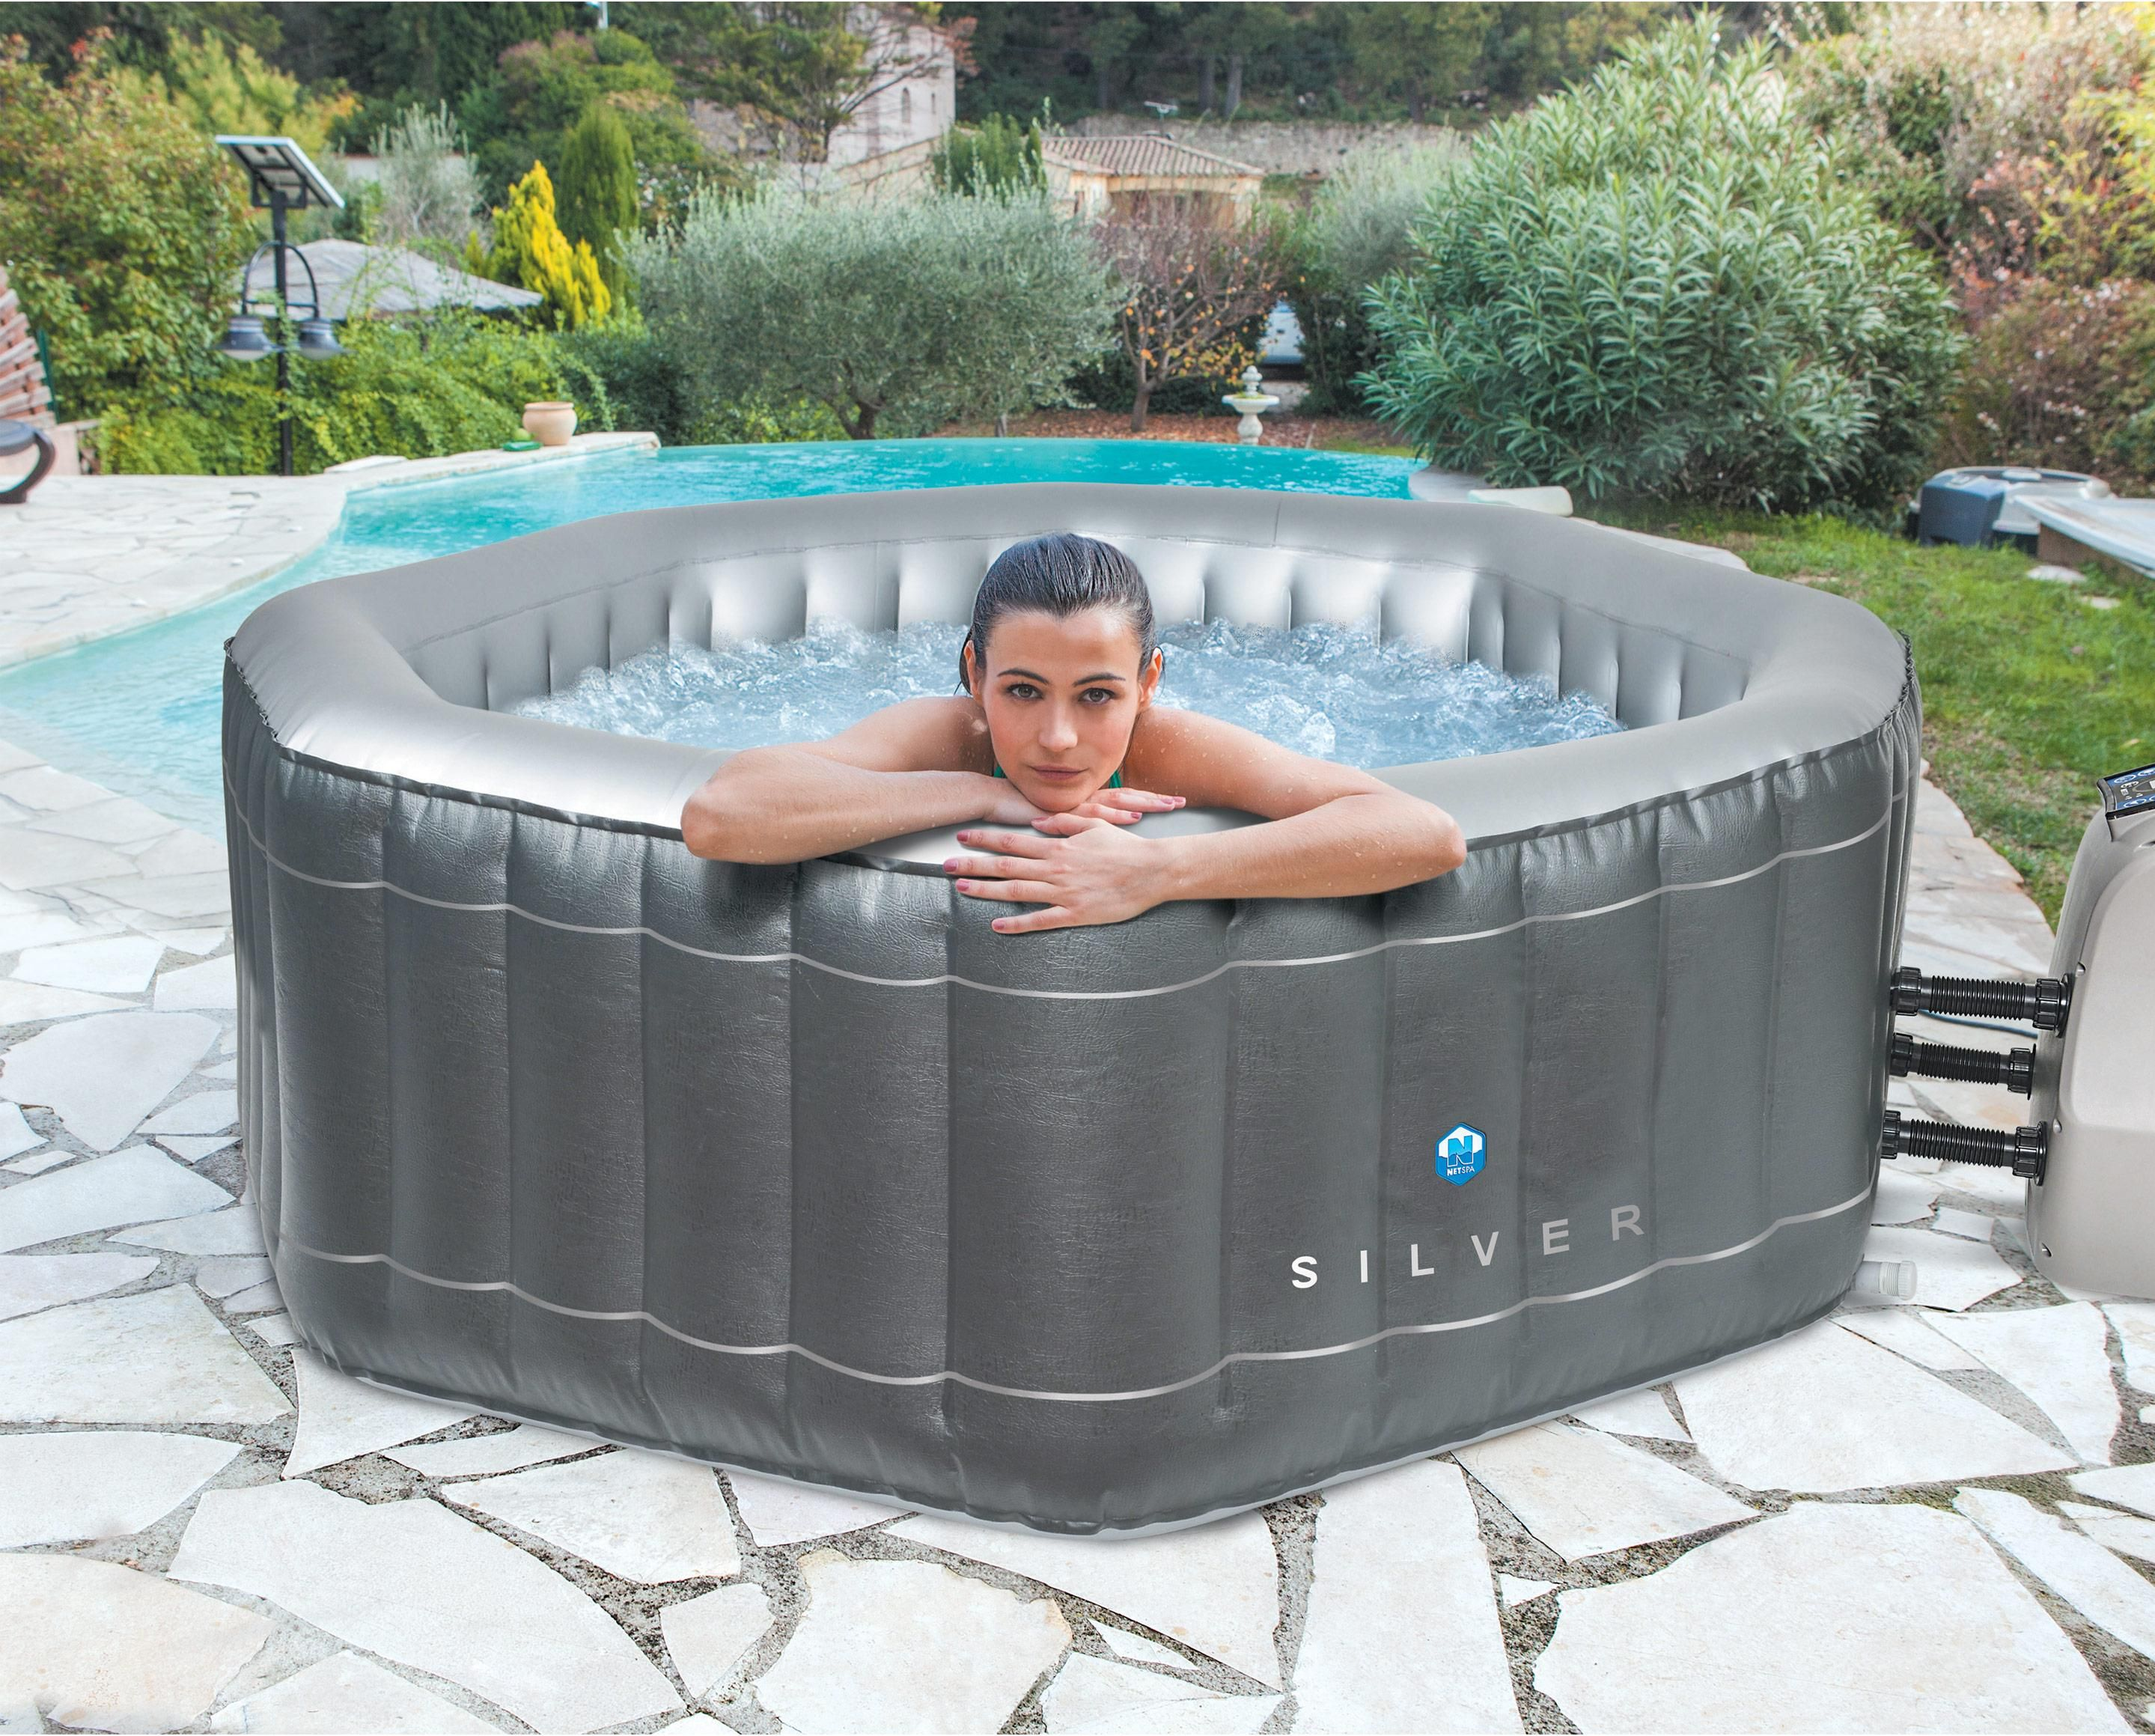 Jacuzzi Gonflable Leroy Merlin spa gonflable poolstar silver octogonal | spa gonflable, spa